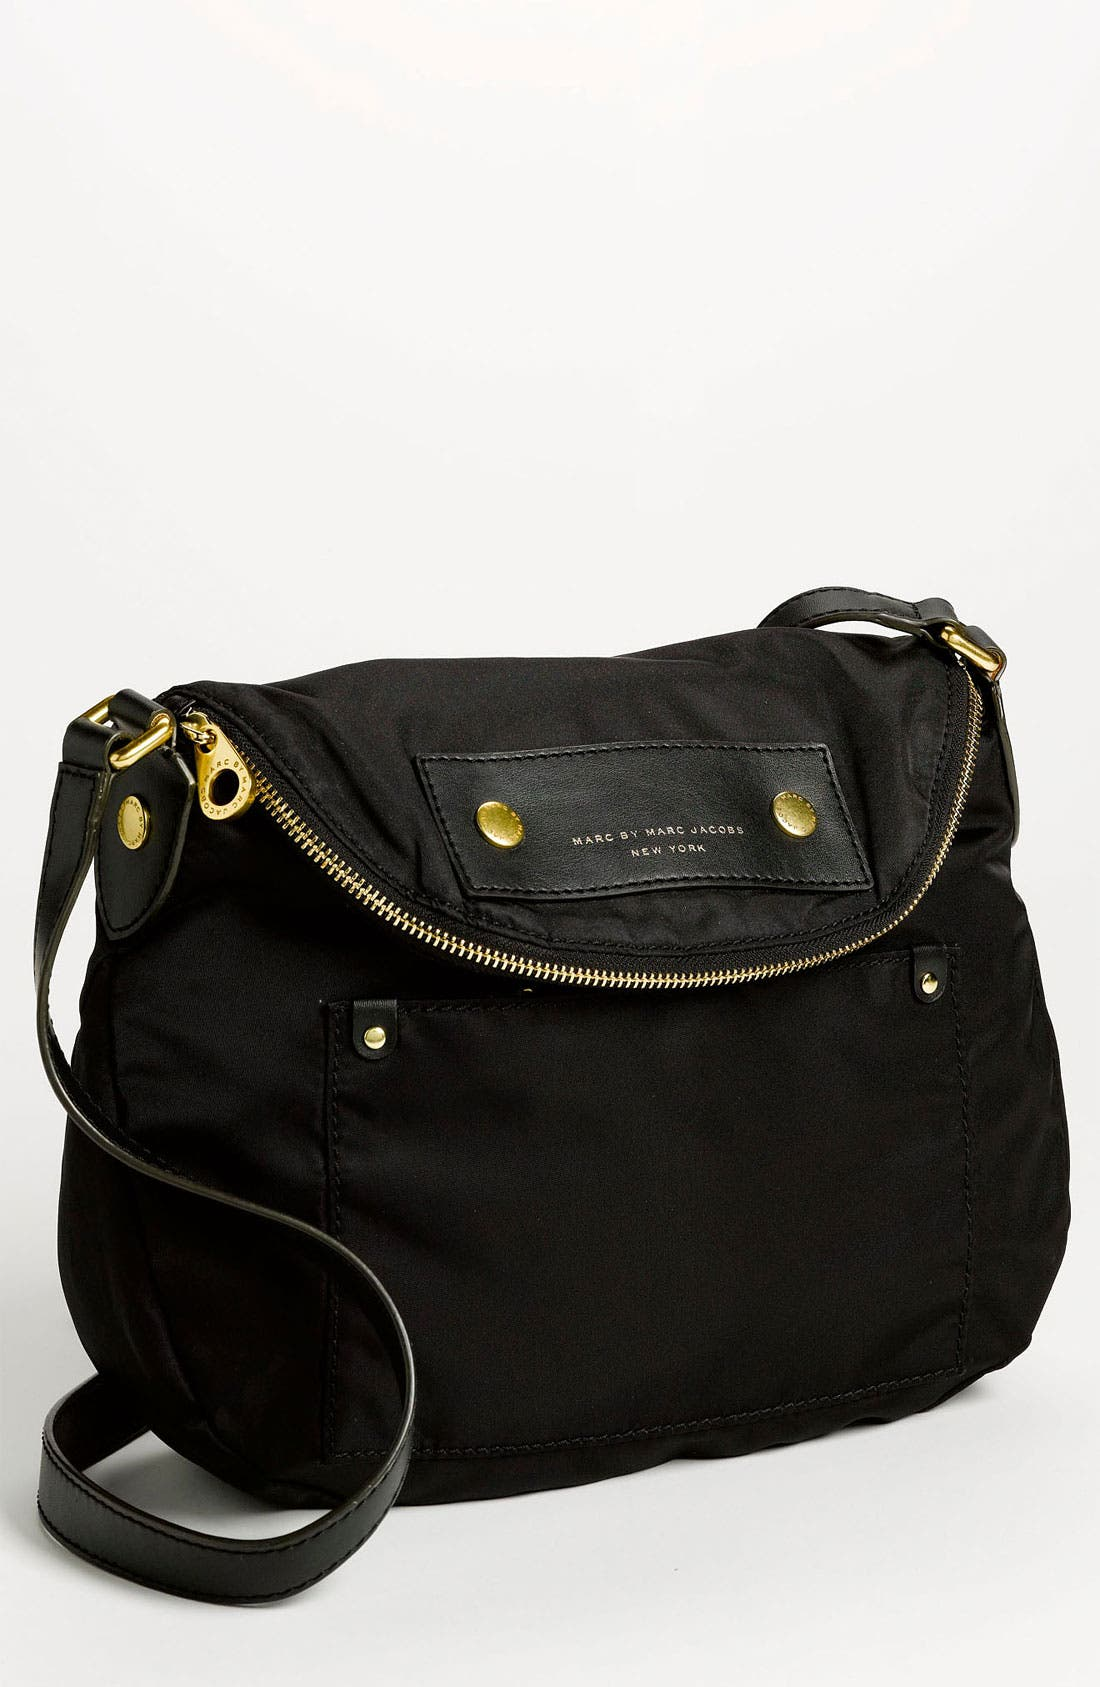 Main Image - MARC BY MARC JACOBS 'Preppy Nylon - Natasha' Crossbody Bag